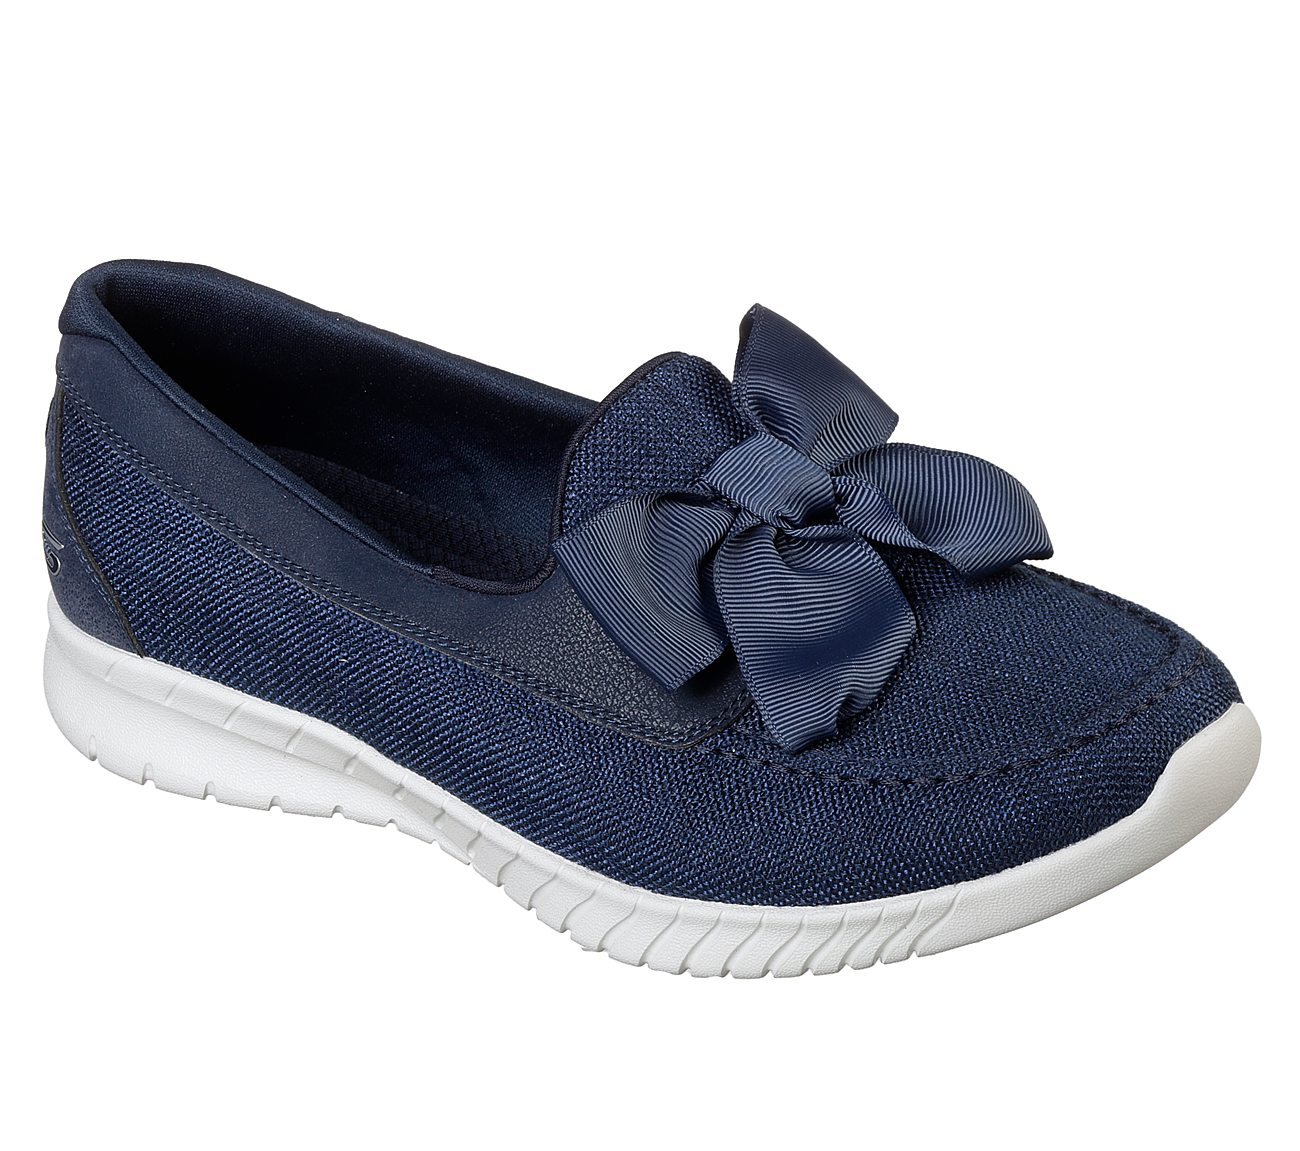 Footlocker For Sale Free Shipping Outlet Skechers Wave Lite Side By Side Loafer(Women's) -Gray Discount Footlocker Finishline Cheap Sale Get Authentic v4Lvn